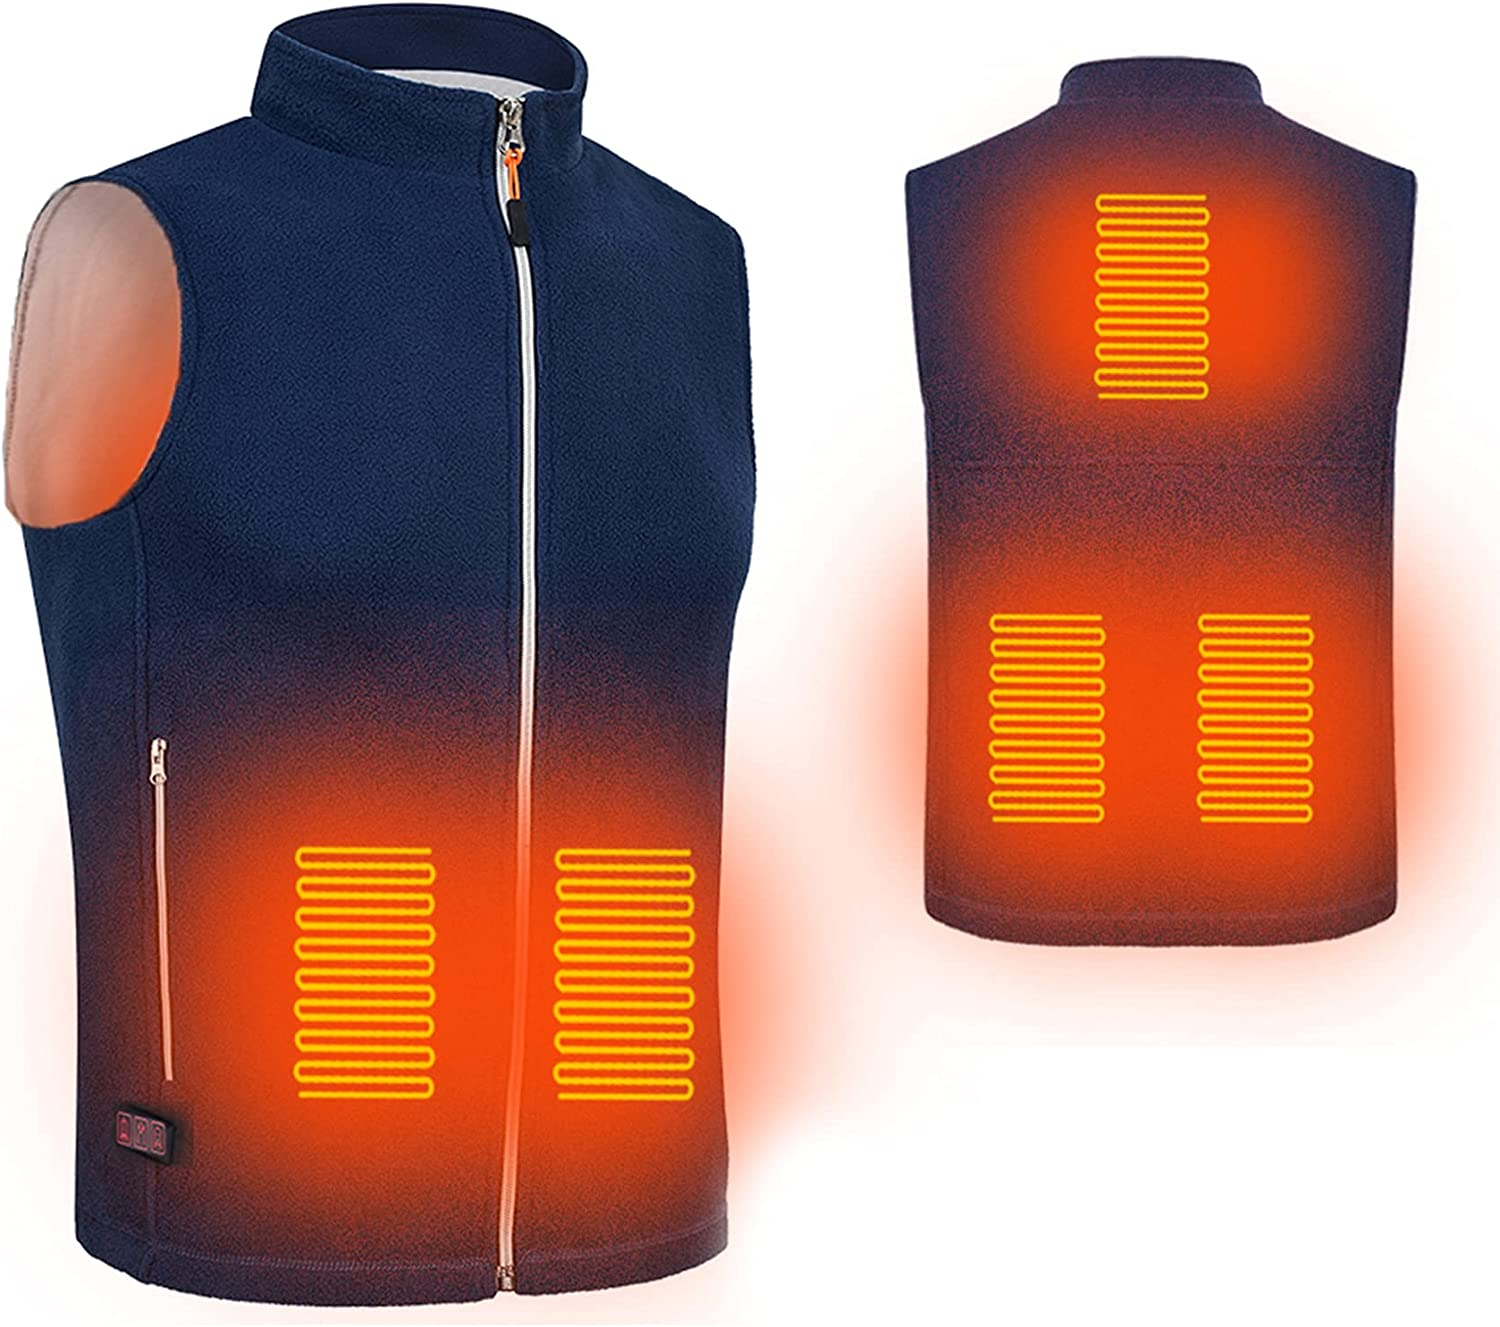 5 Heating Areas Winter Heated Vest Electric Thermal Clothing Waistcoat Fish Hiking Outdoor USB Infrared Heating Vest Jacket